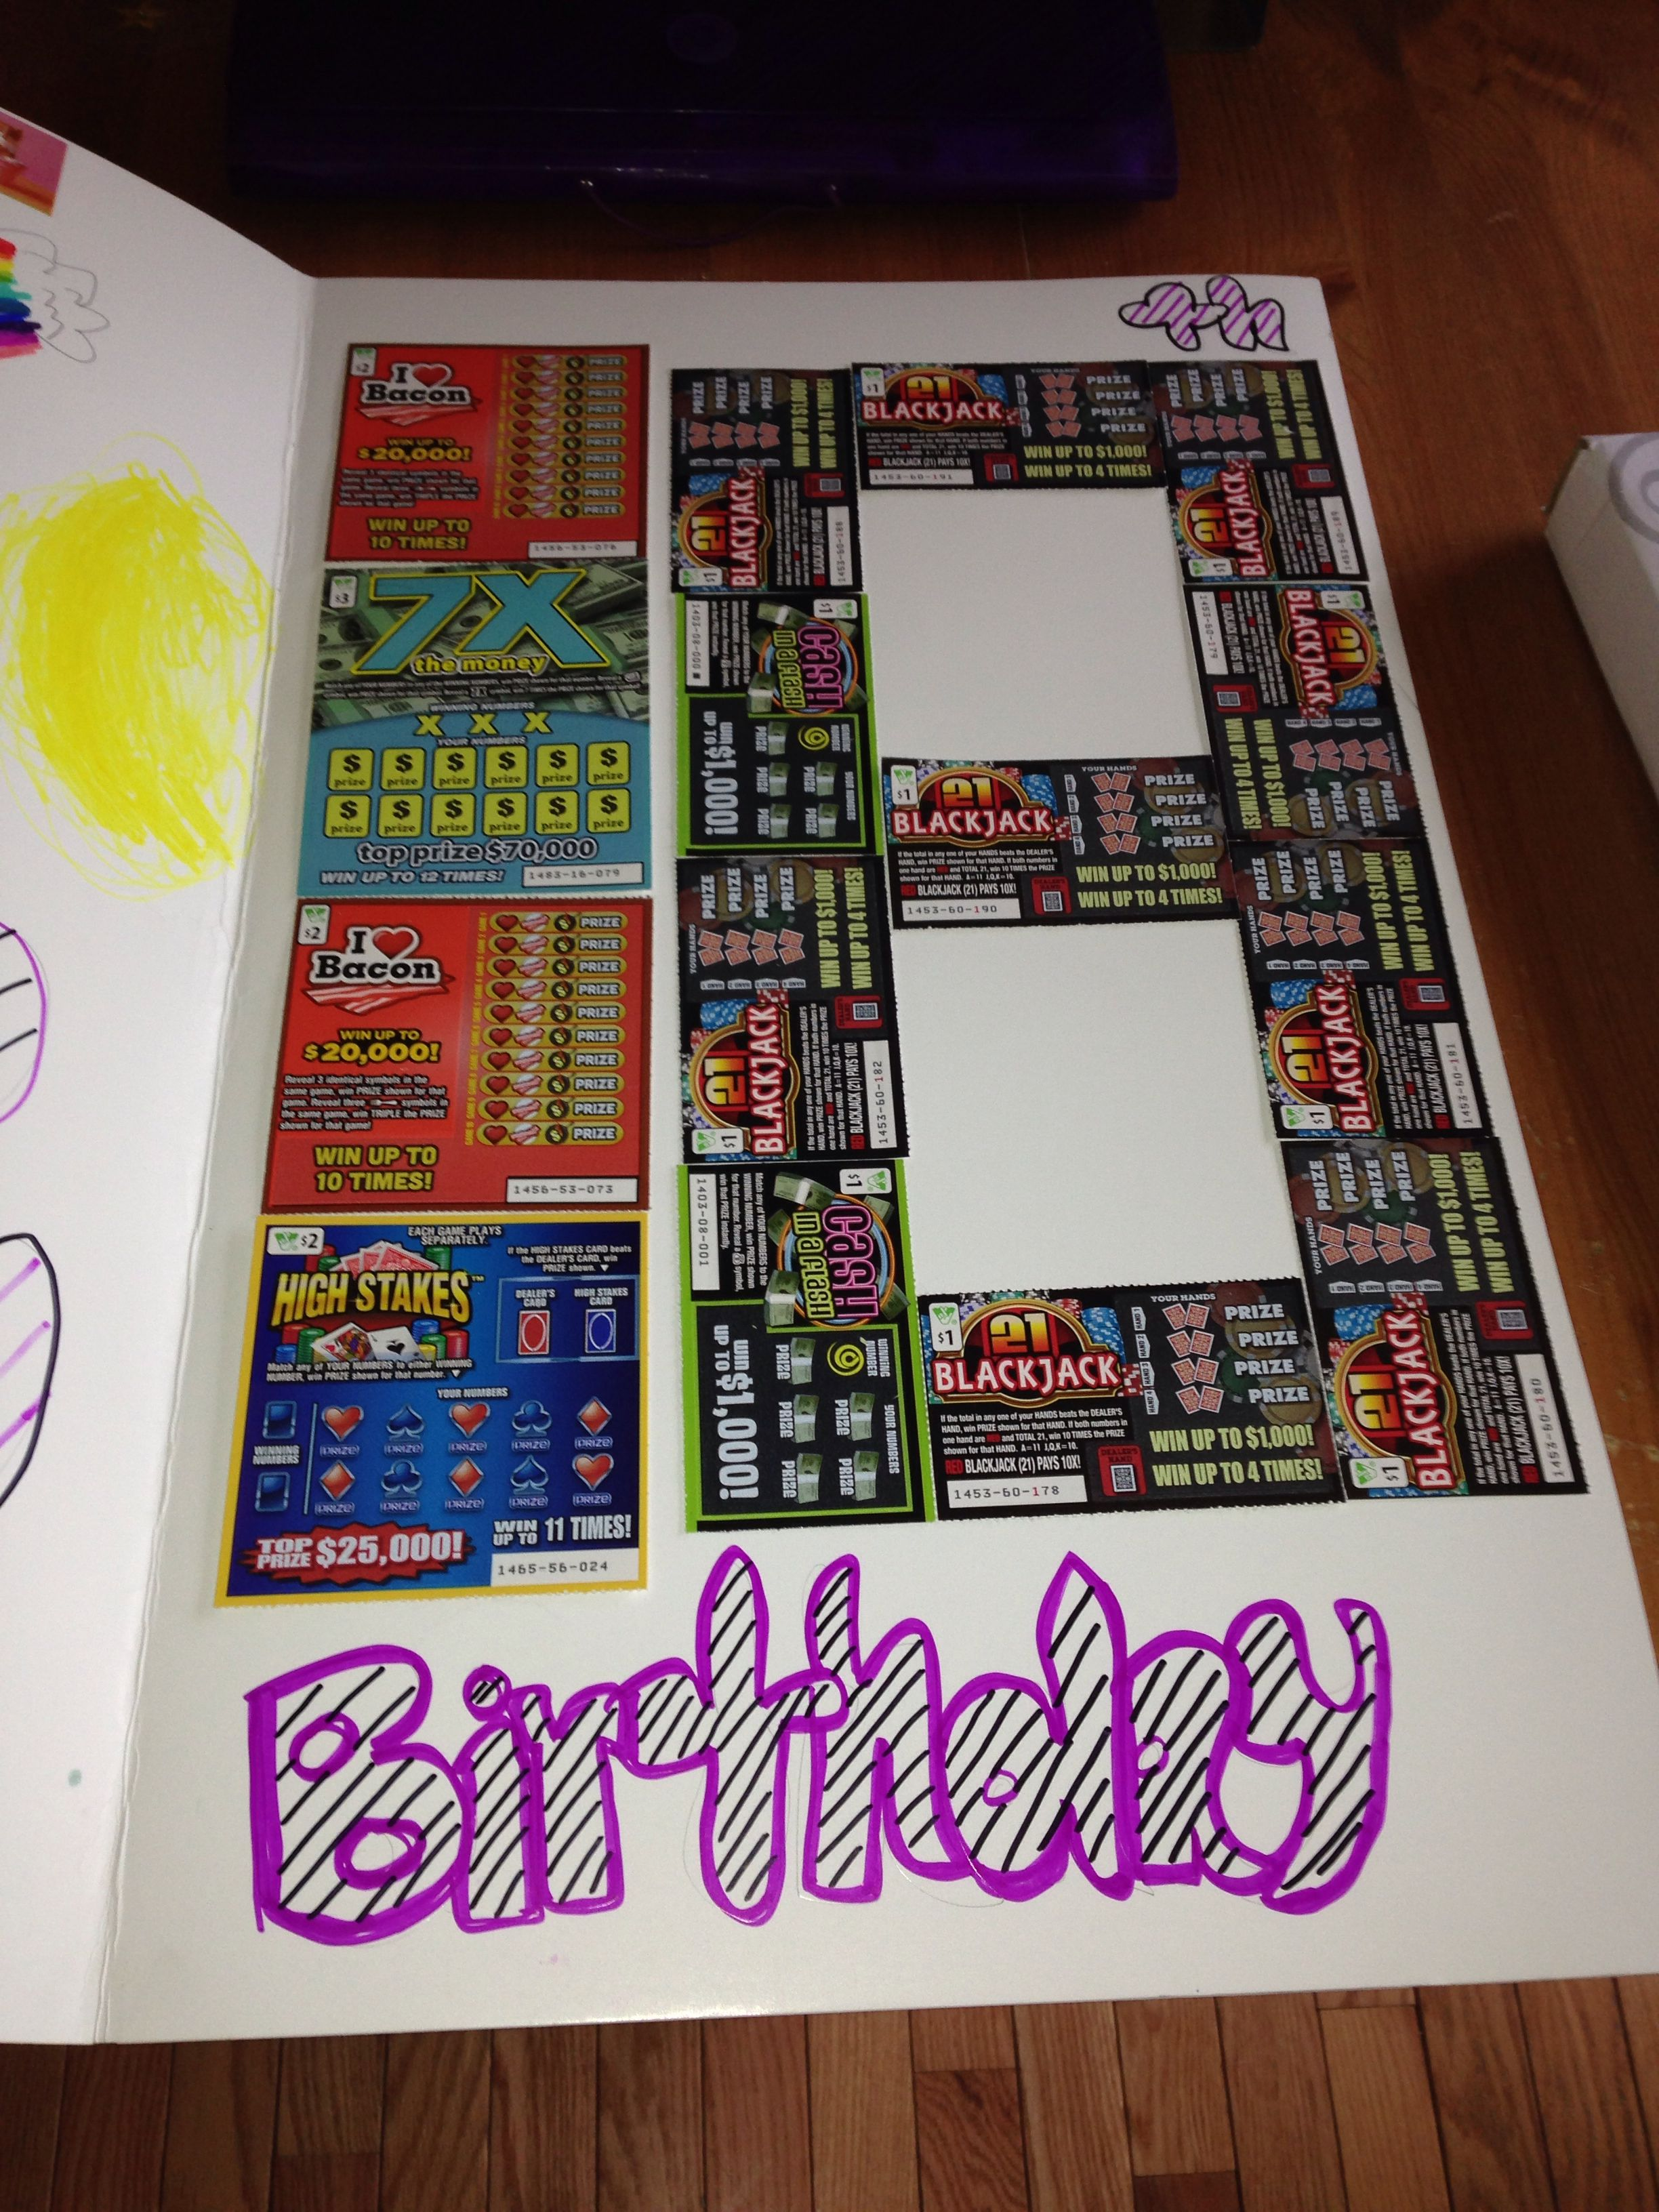 Scratch Off lottery ticketsGreat 18th birthday idea Holiday stuff